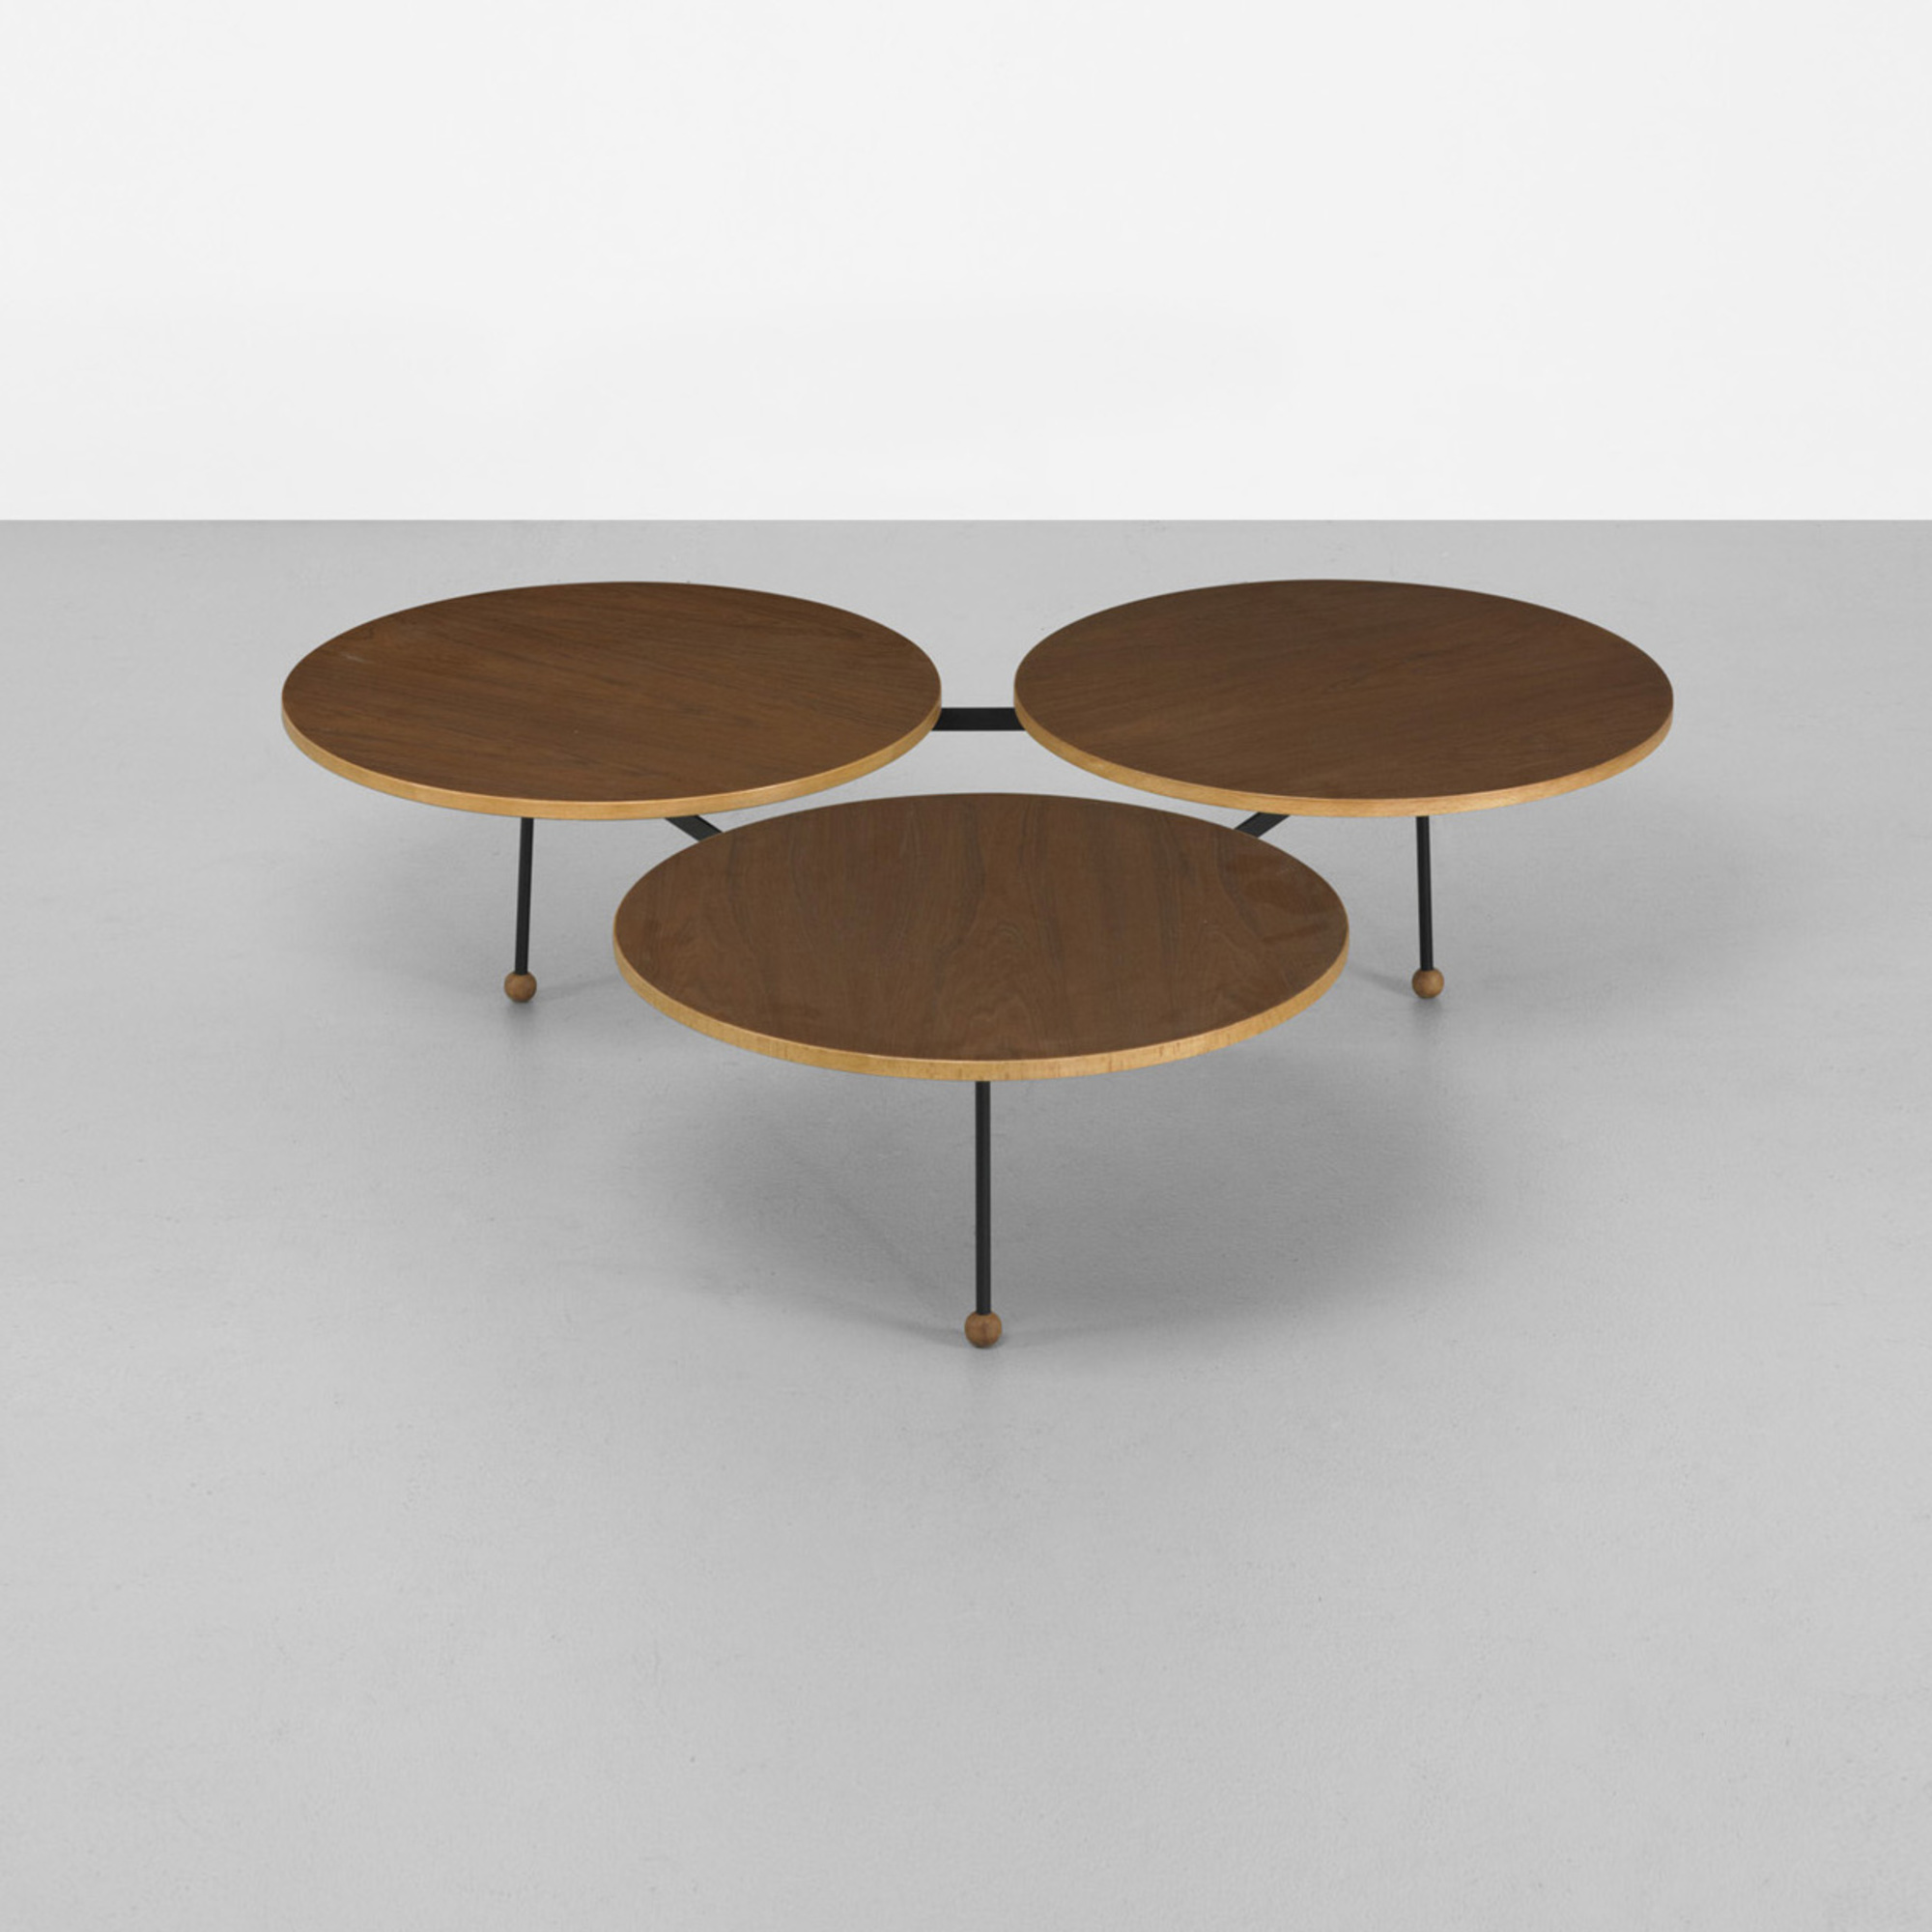 Outstanding 261 Greta Magnusson Grossman Rare Coffee Table Important Gmtry Best Dining Table And Chair Ideas Images Gmtryco